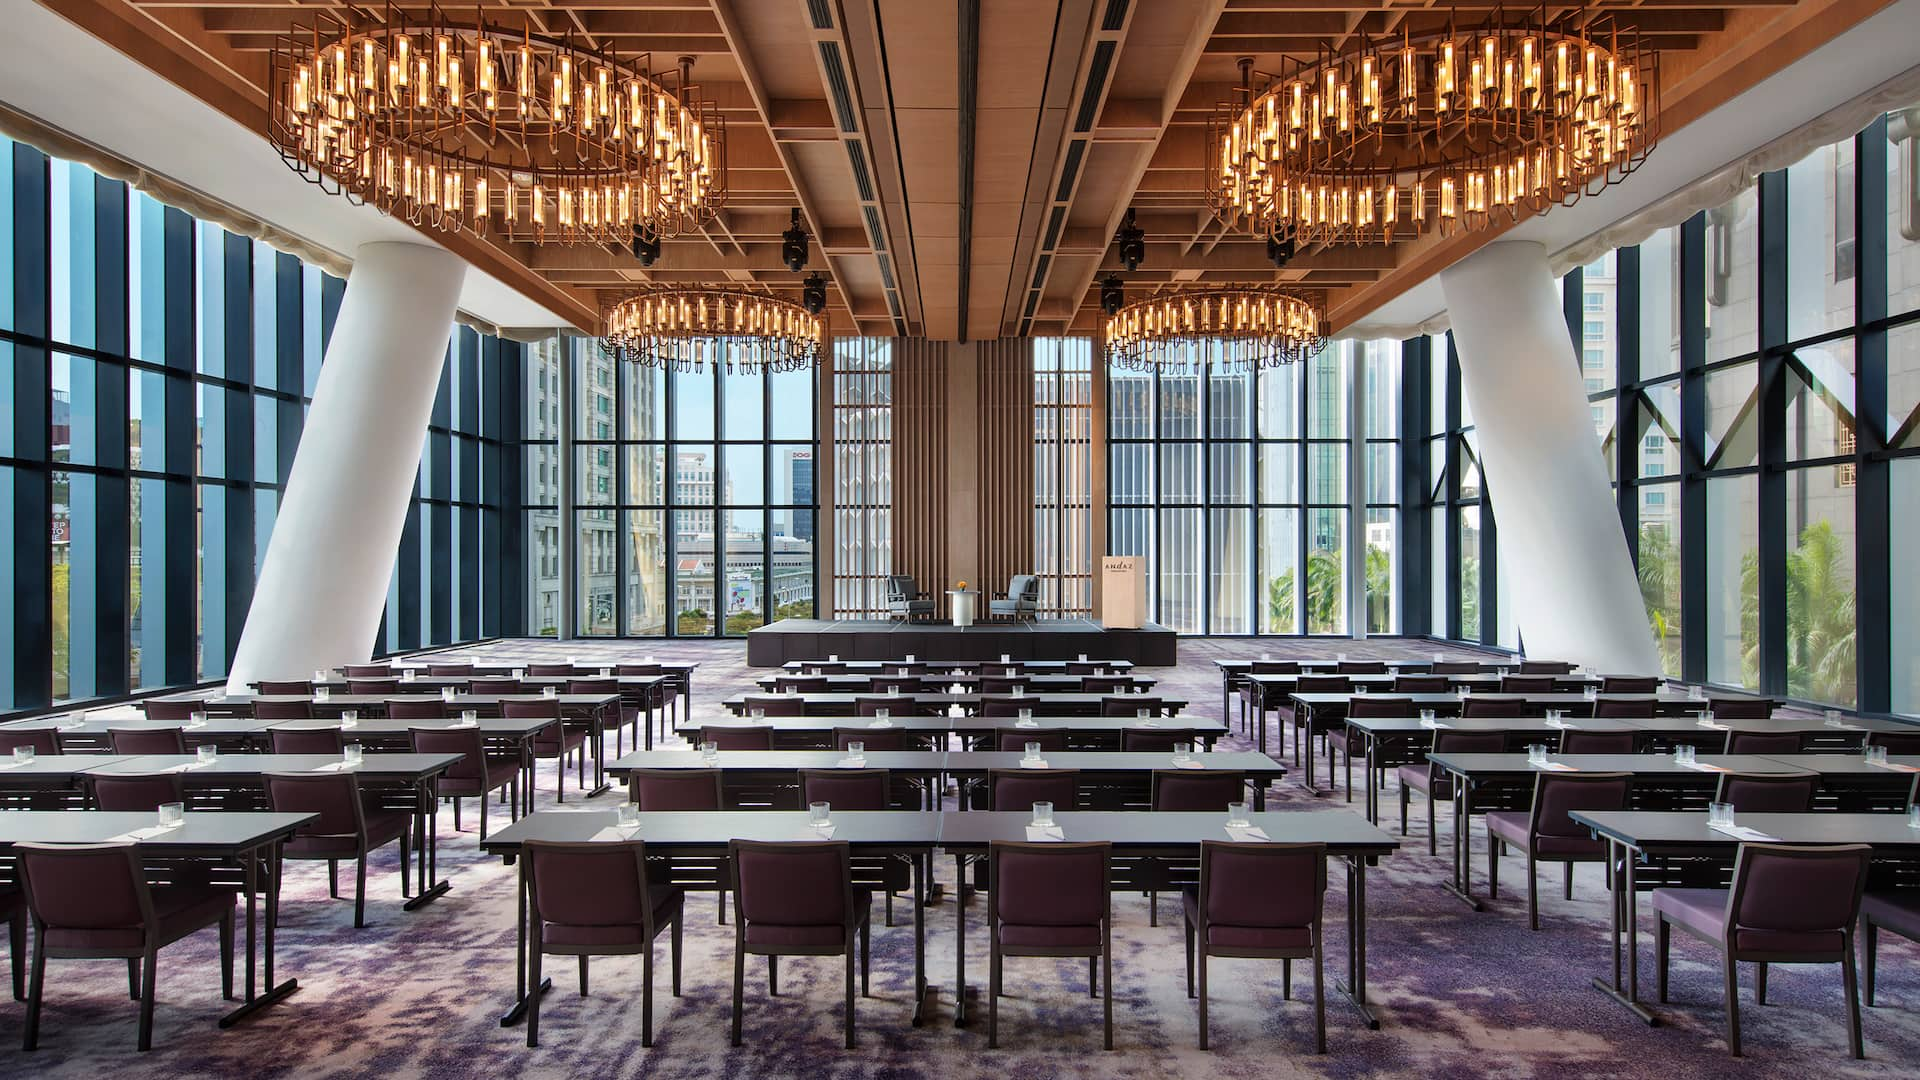 The Glasshouse (Classroom Style Seating) Meetings and Events at Andaz Hotel, Singapore